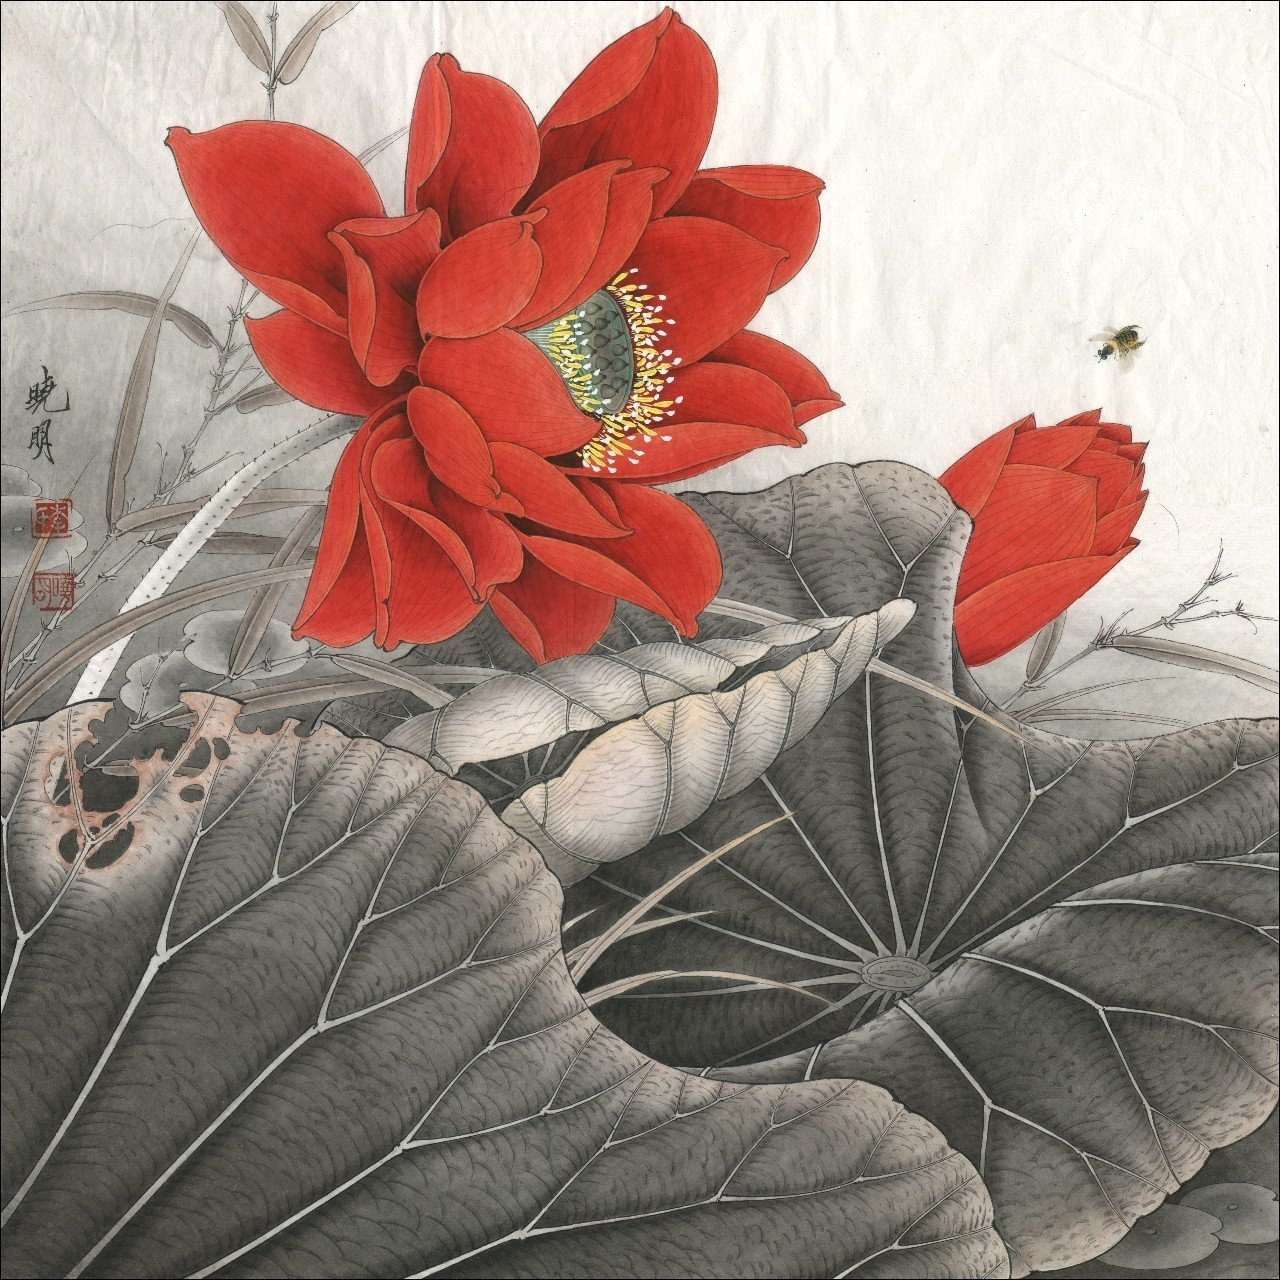 Red Lotus Flower Meaning And Symbolism Mythologian